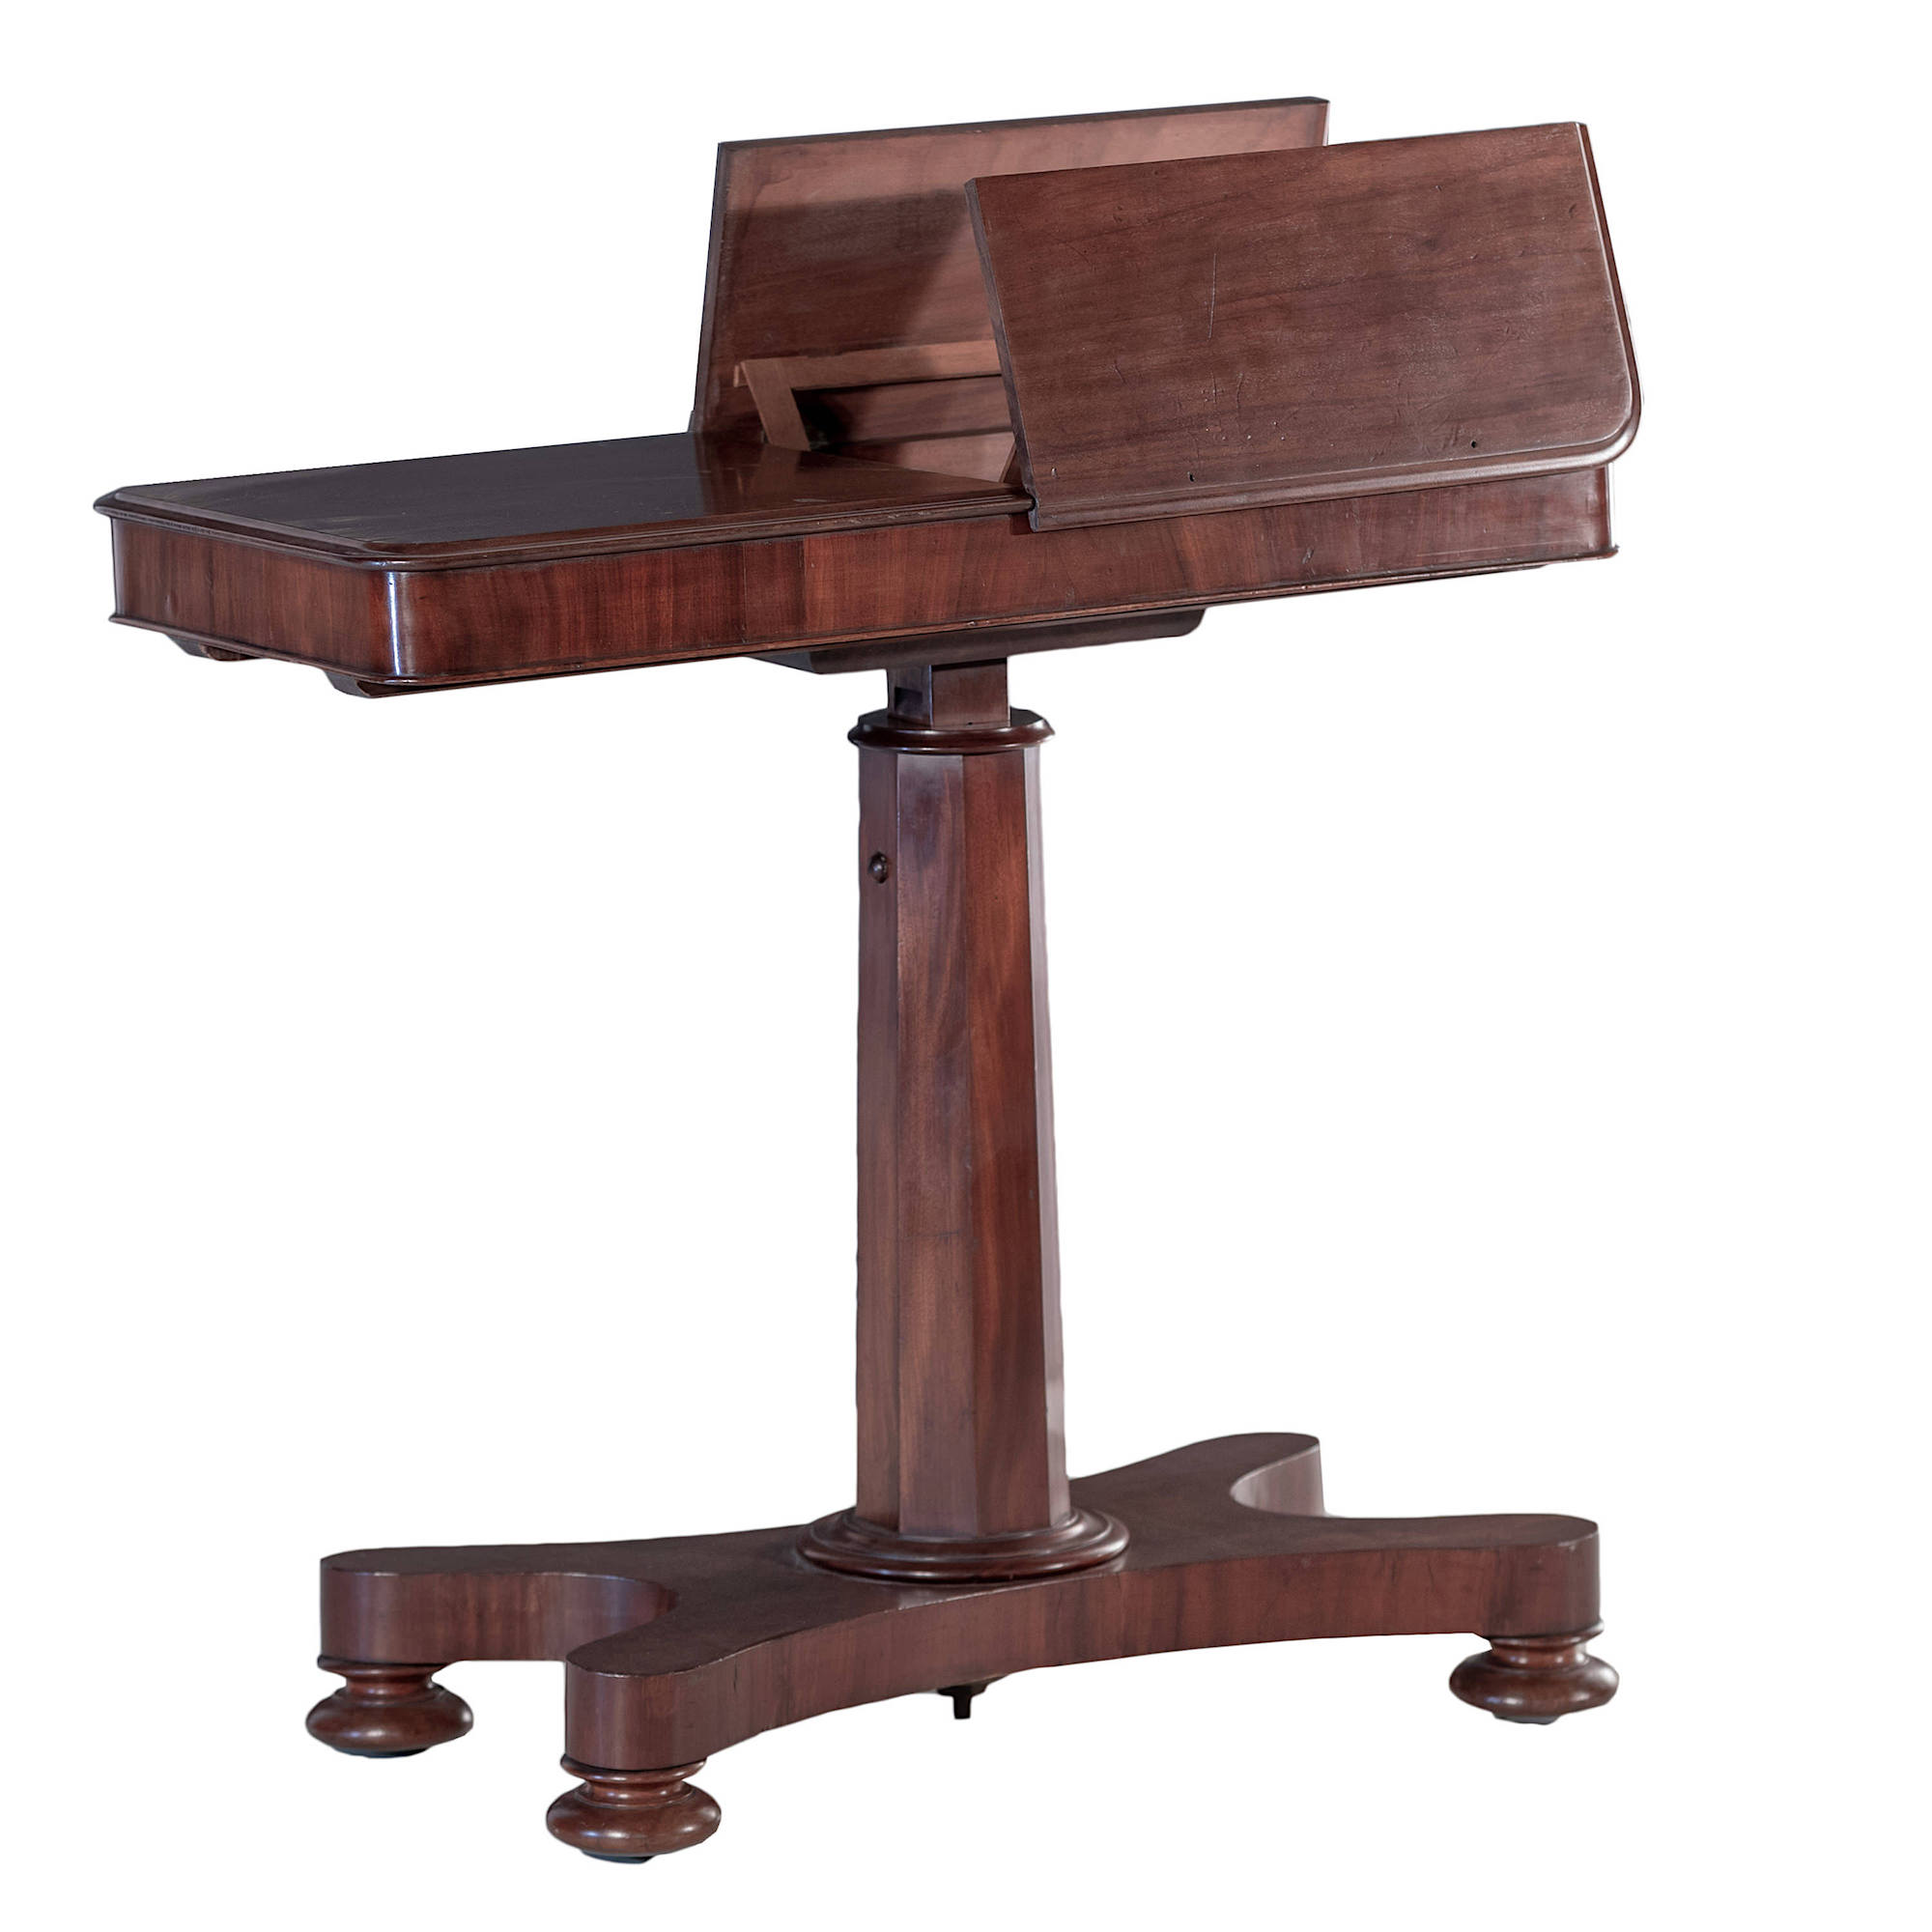 'Early Victorian Mahogany Adjustable Reading Table with Opposing Reading Lecterns Circa 1840'